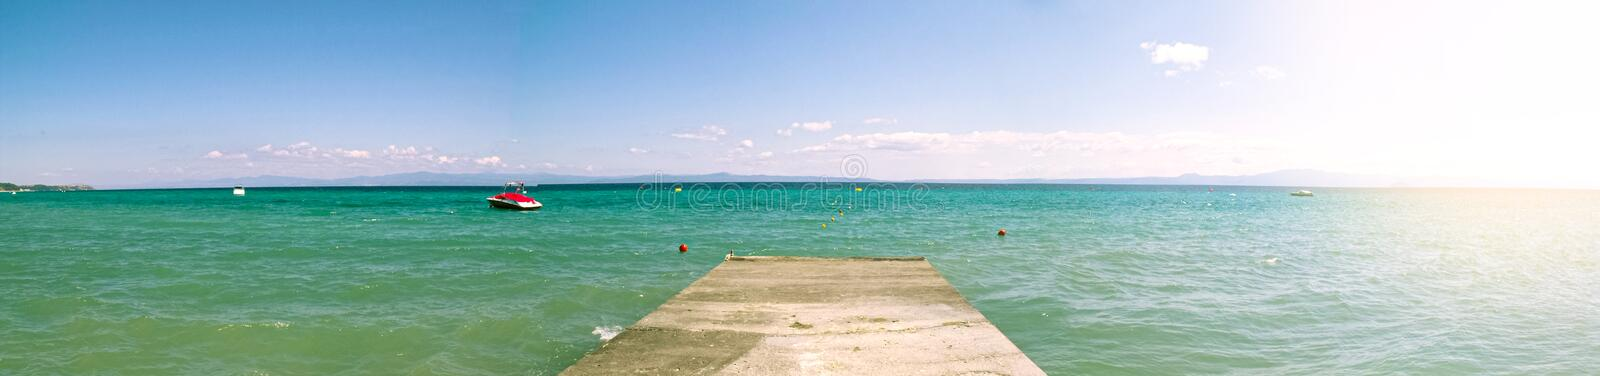 Panoramic seascape with turquoise sea and pier at sunny day. Chalkidiki also spelt Chalkidike, Chalcidice, Khalkidhiki or. Panoramic seascape with turquoise sea stock images